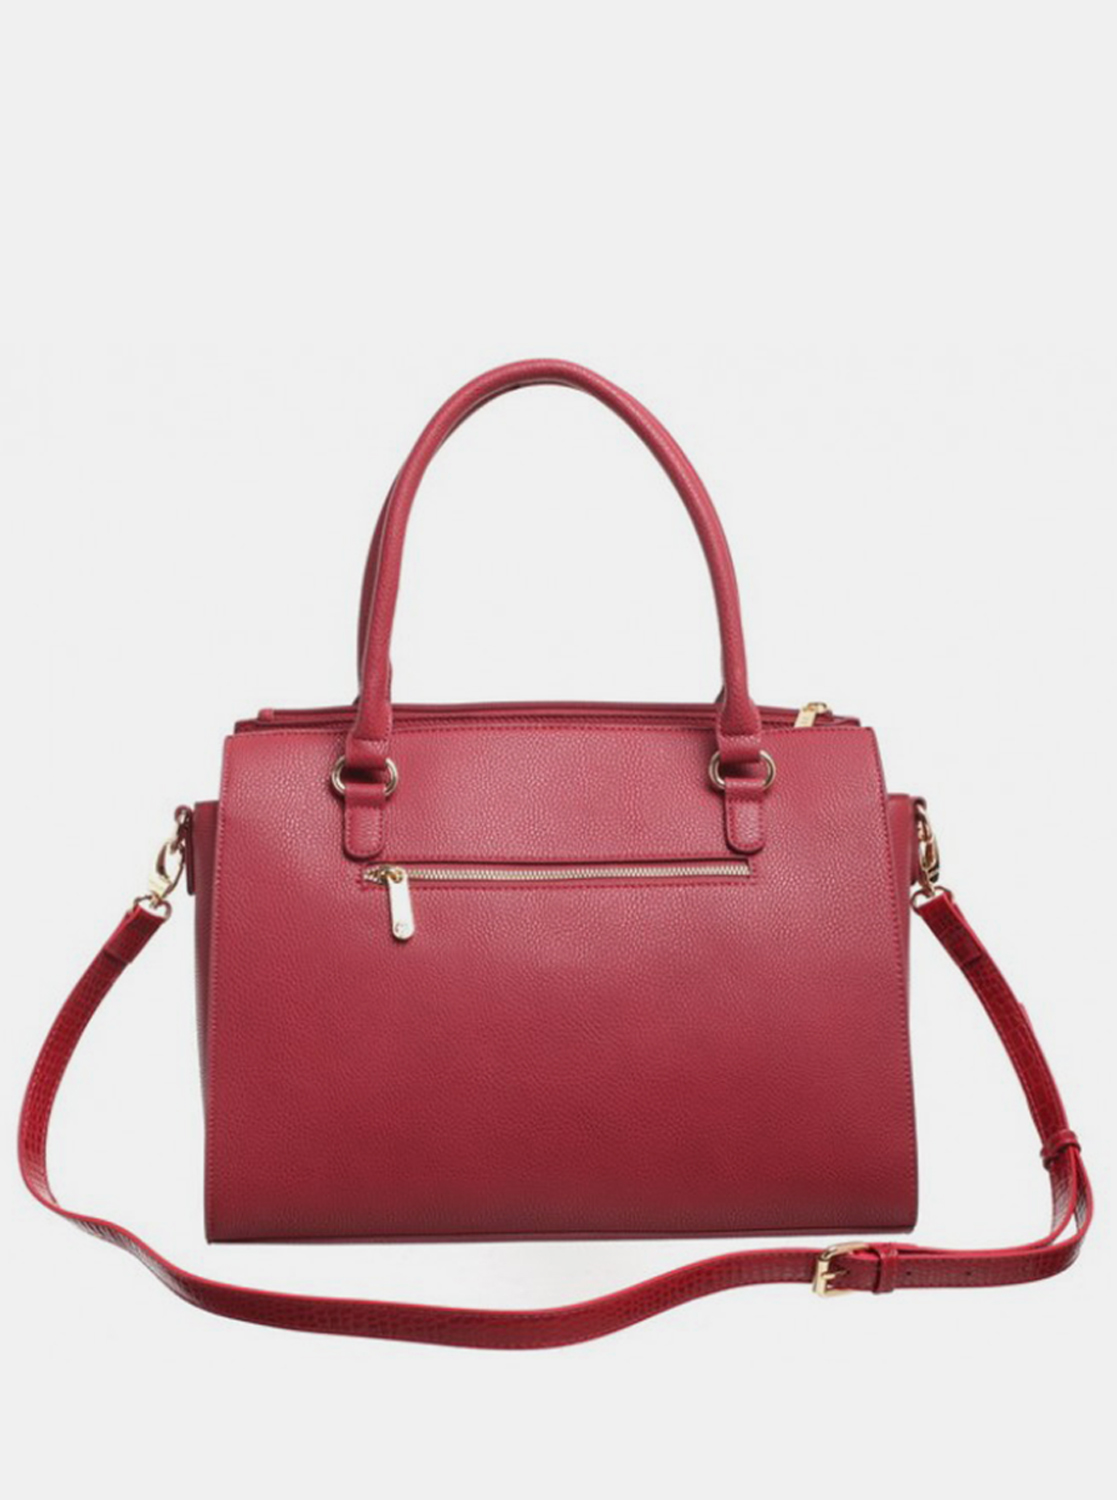 Bessie London bordo torbica